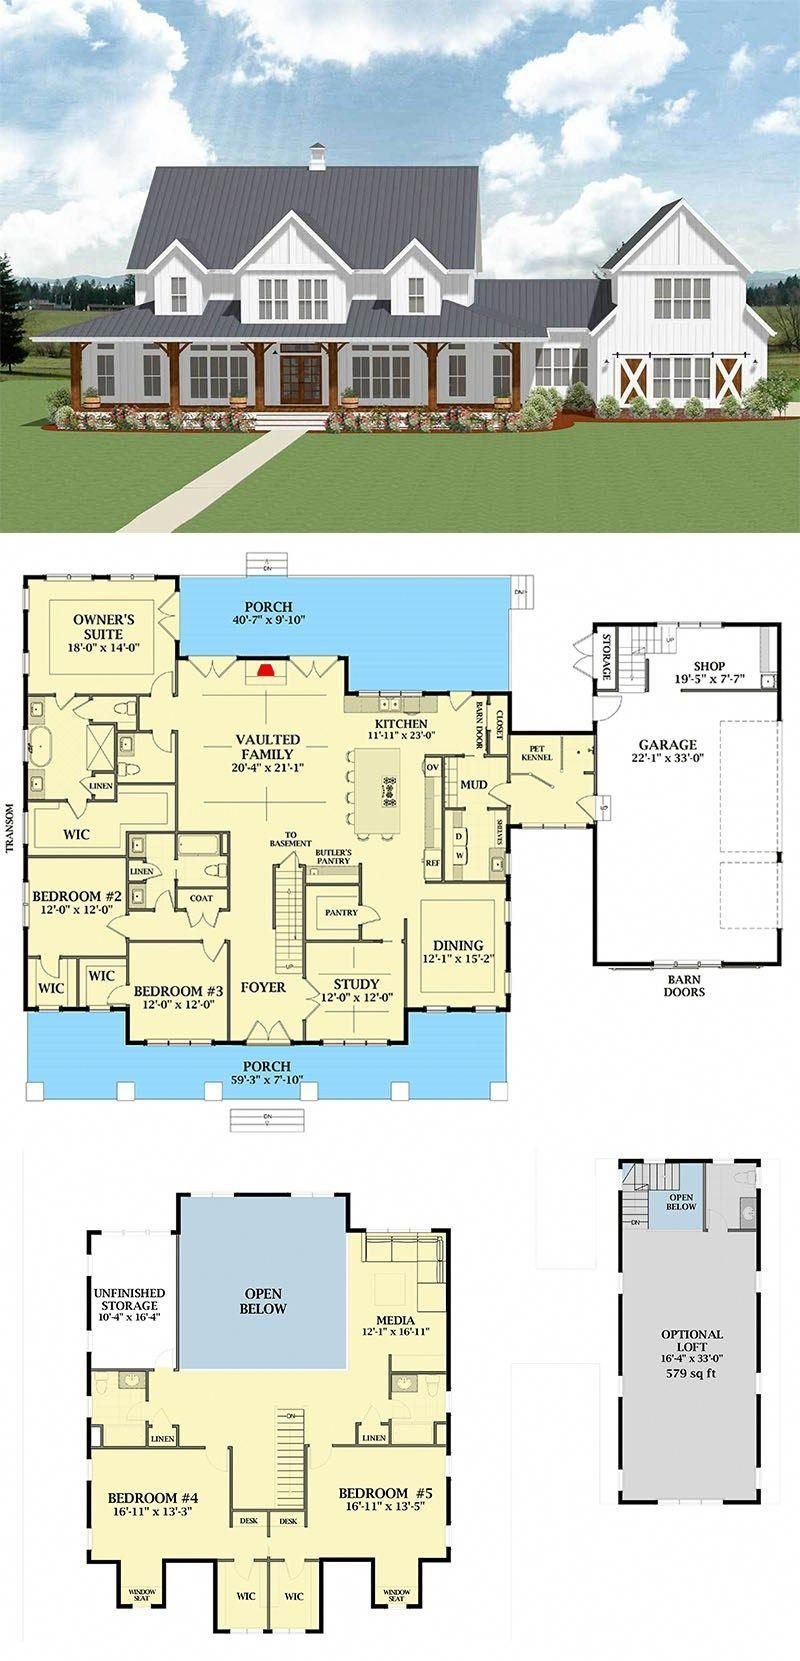 Most Popular Farmhouse Plans Blueprints Layouts And Details Of The Best Farmhouses On The Marke House Plans Farmhouse Farmhouse Plans Modern Farmhouse Plans